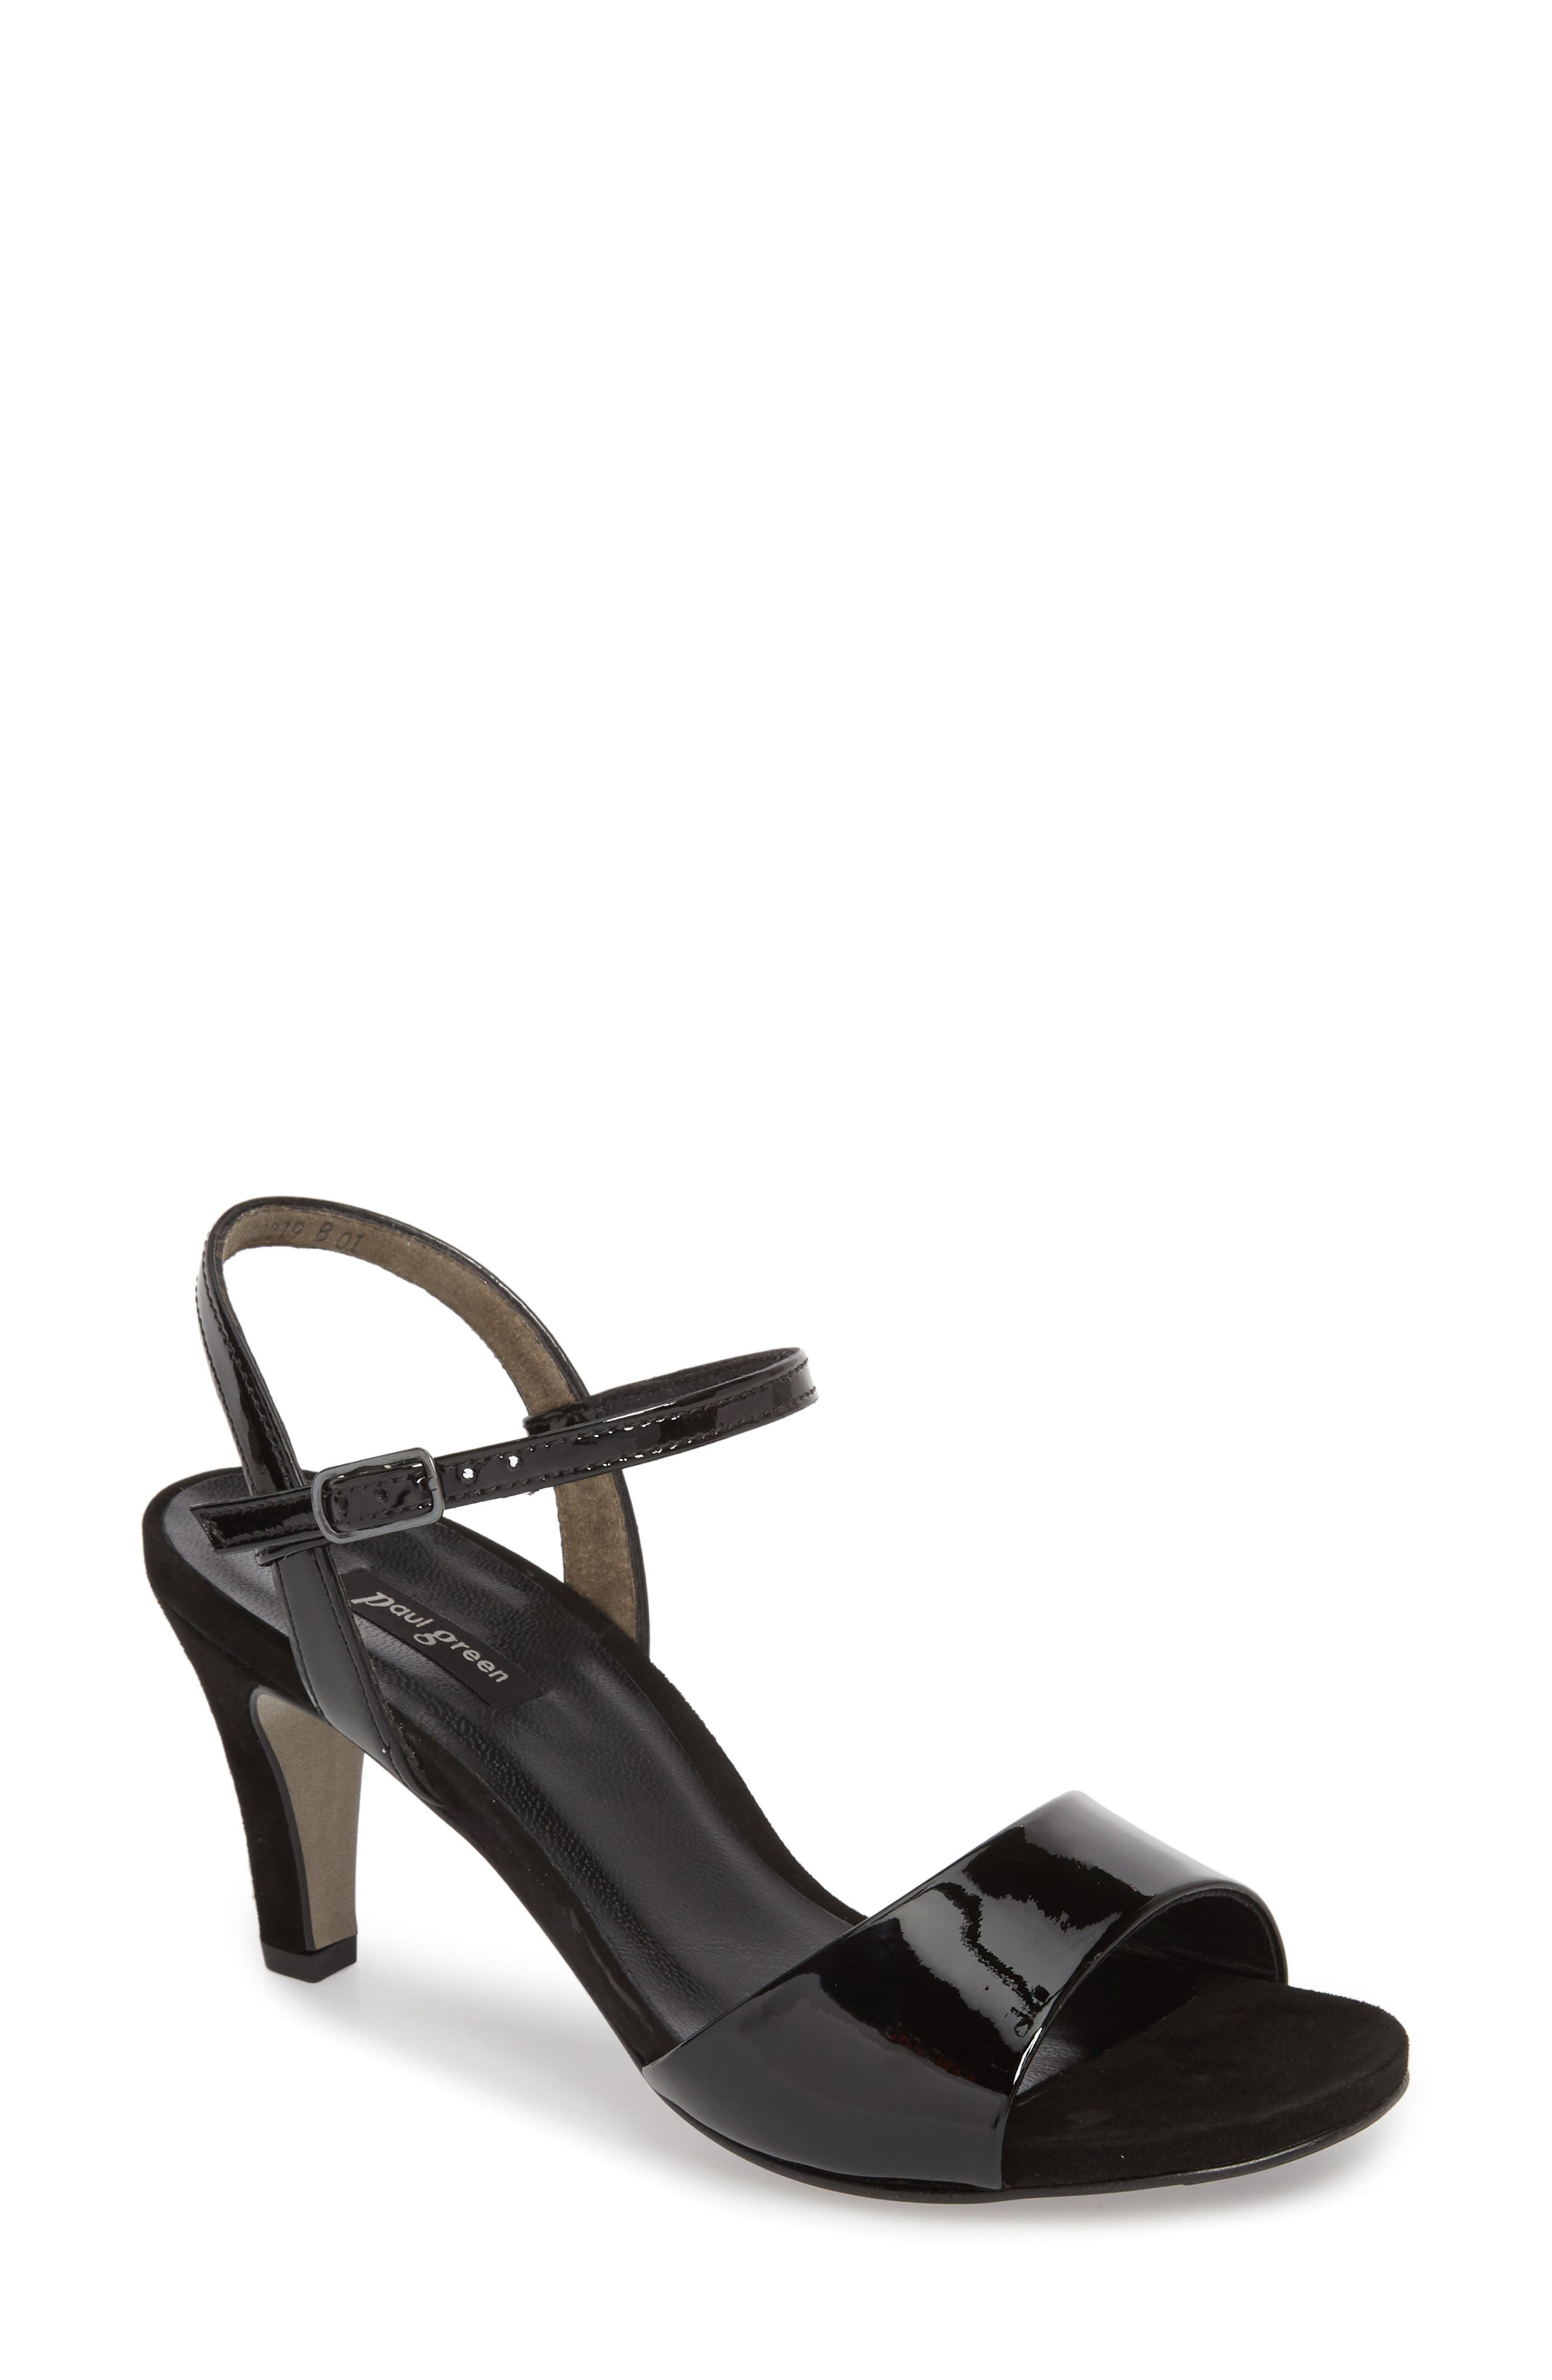 PAUL GREEN SELBY STRAPPY SANDAL